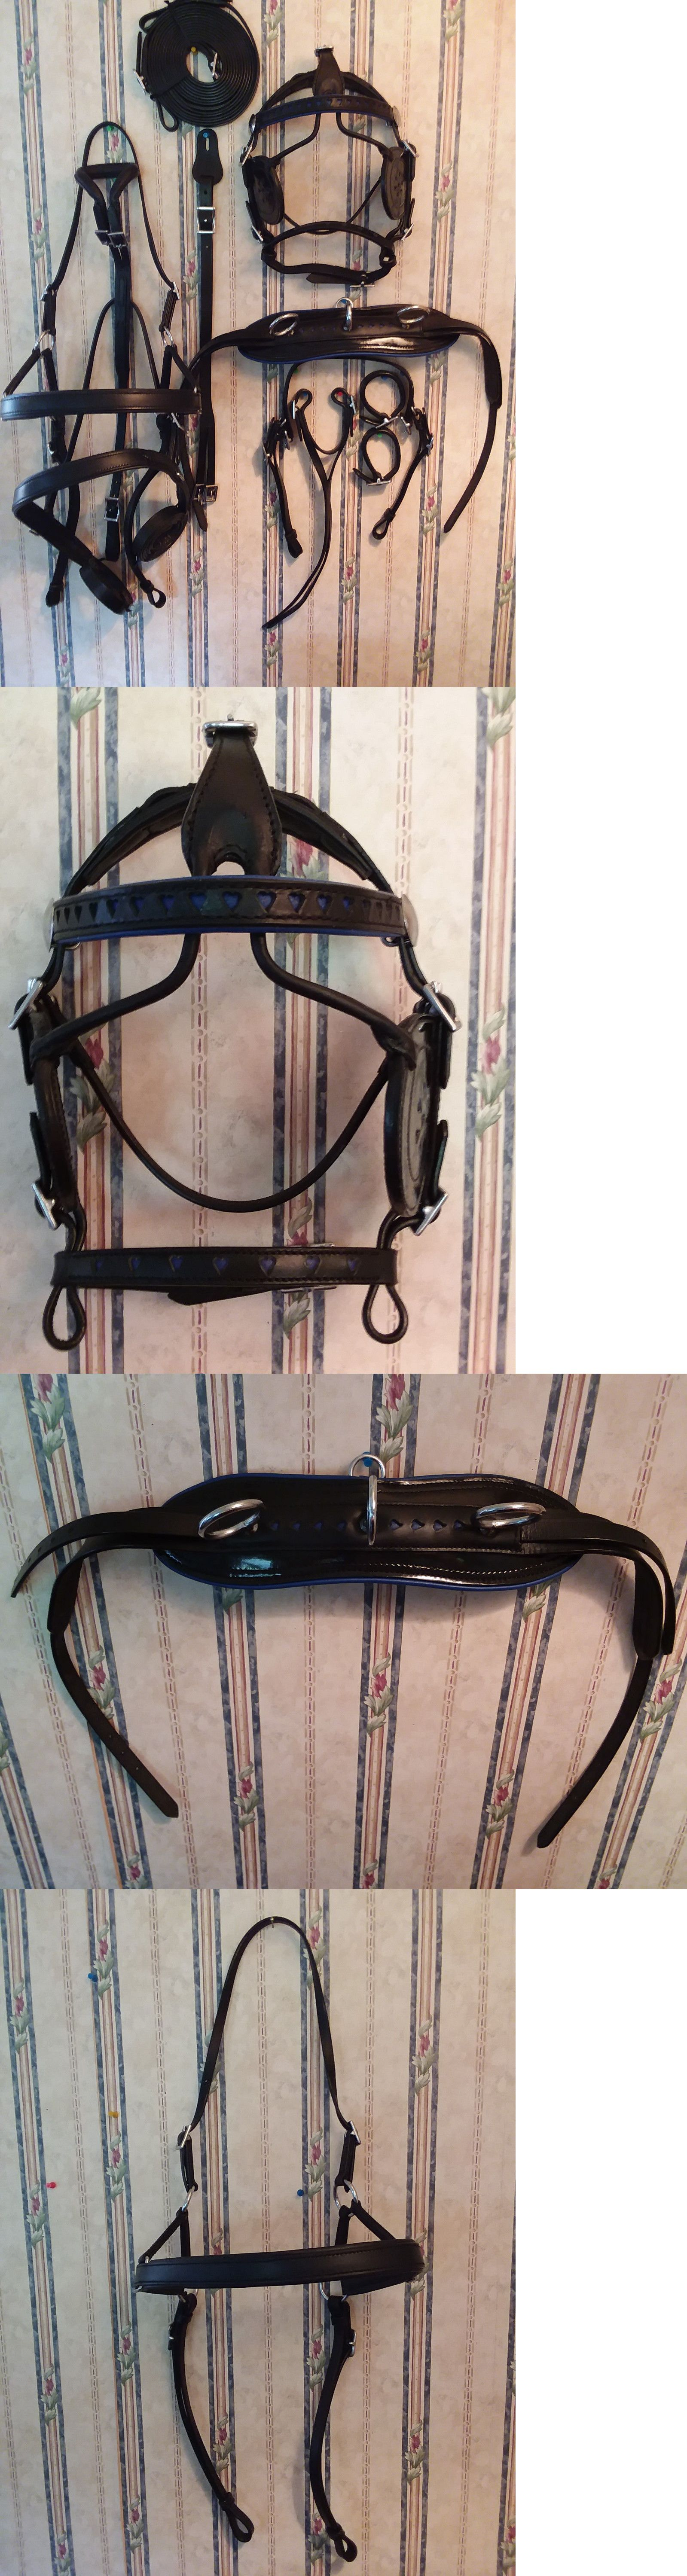 driving equipment 85178 black leather shetland pony mini miniature driving horse harness w blue hearts buy it now only 149 95 on ebay driving  [ 1599 x 5997 Pixel ]